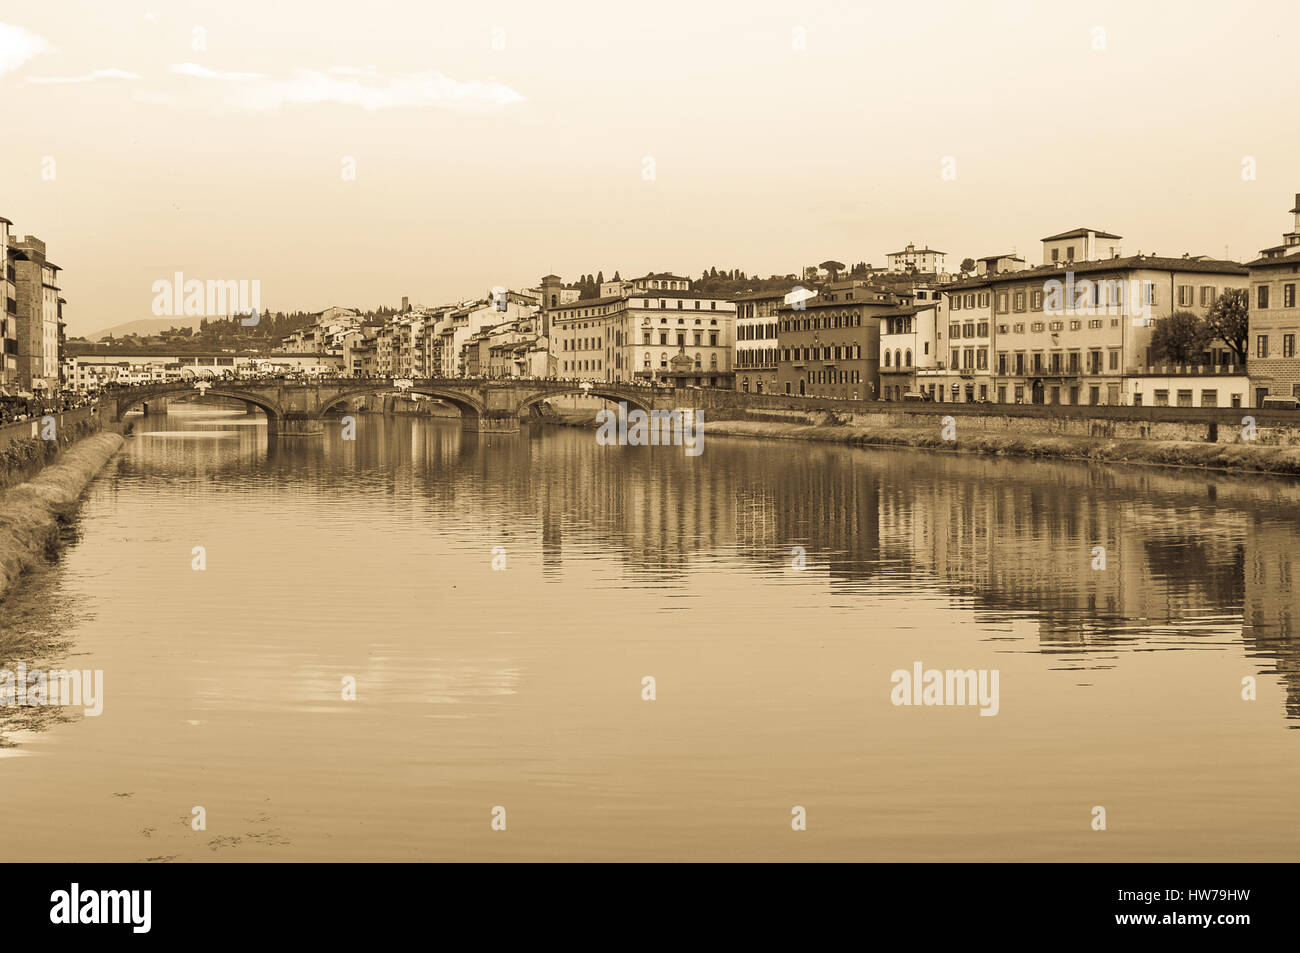 Old postcard from Florence in sepia tones - Stock Image